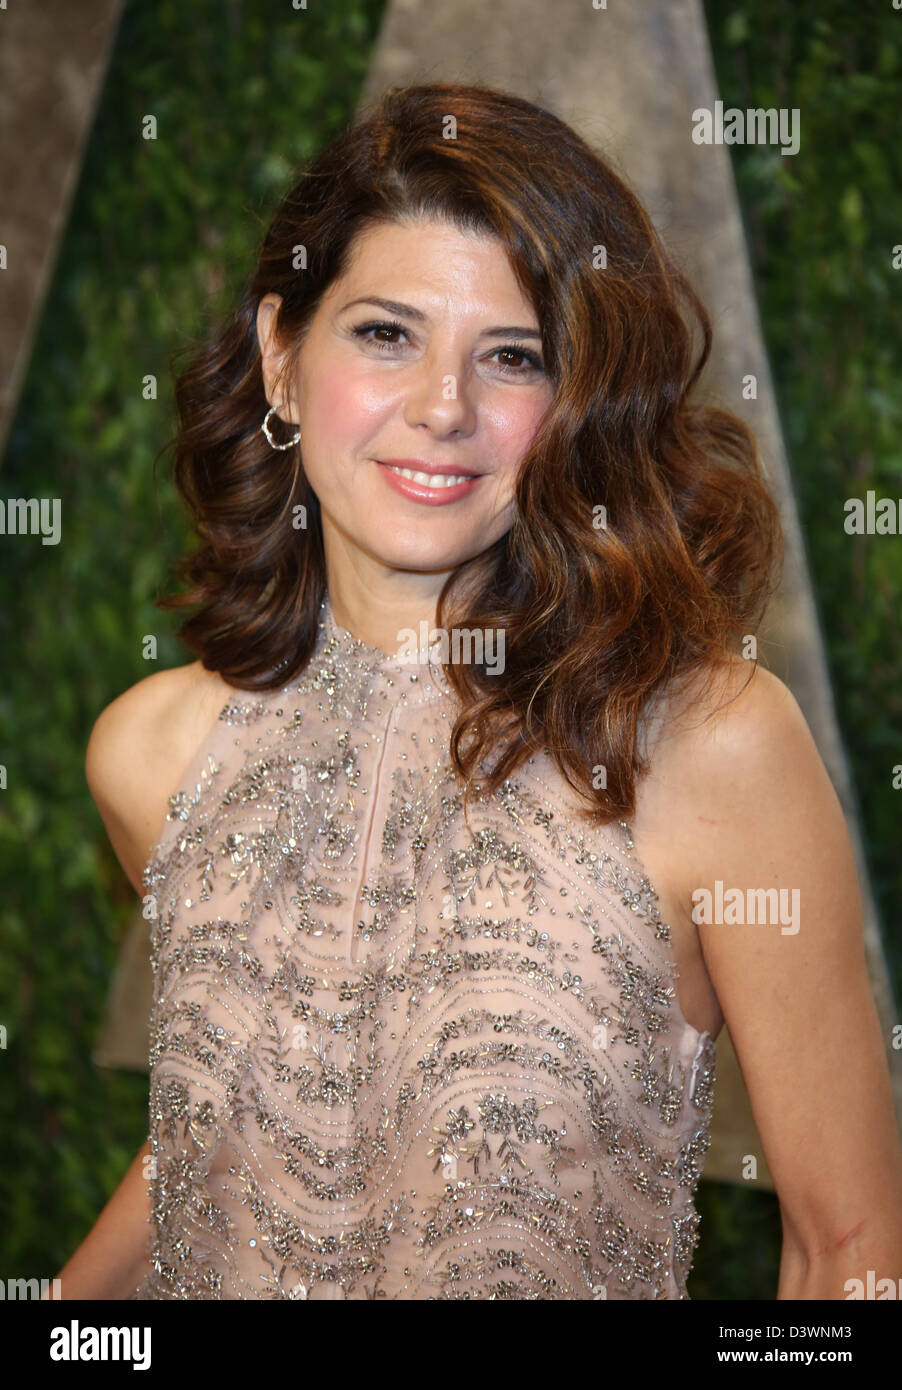 Actress Marisa Tomei arrives at the Vanity Fair Oscar Party at Sunset Tower in West Hollywood, Los Angeles, USA, - Stock Image